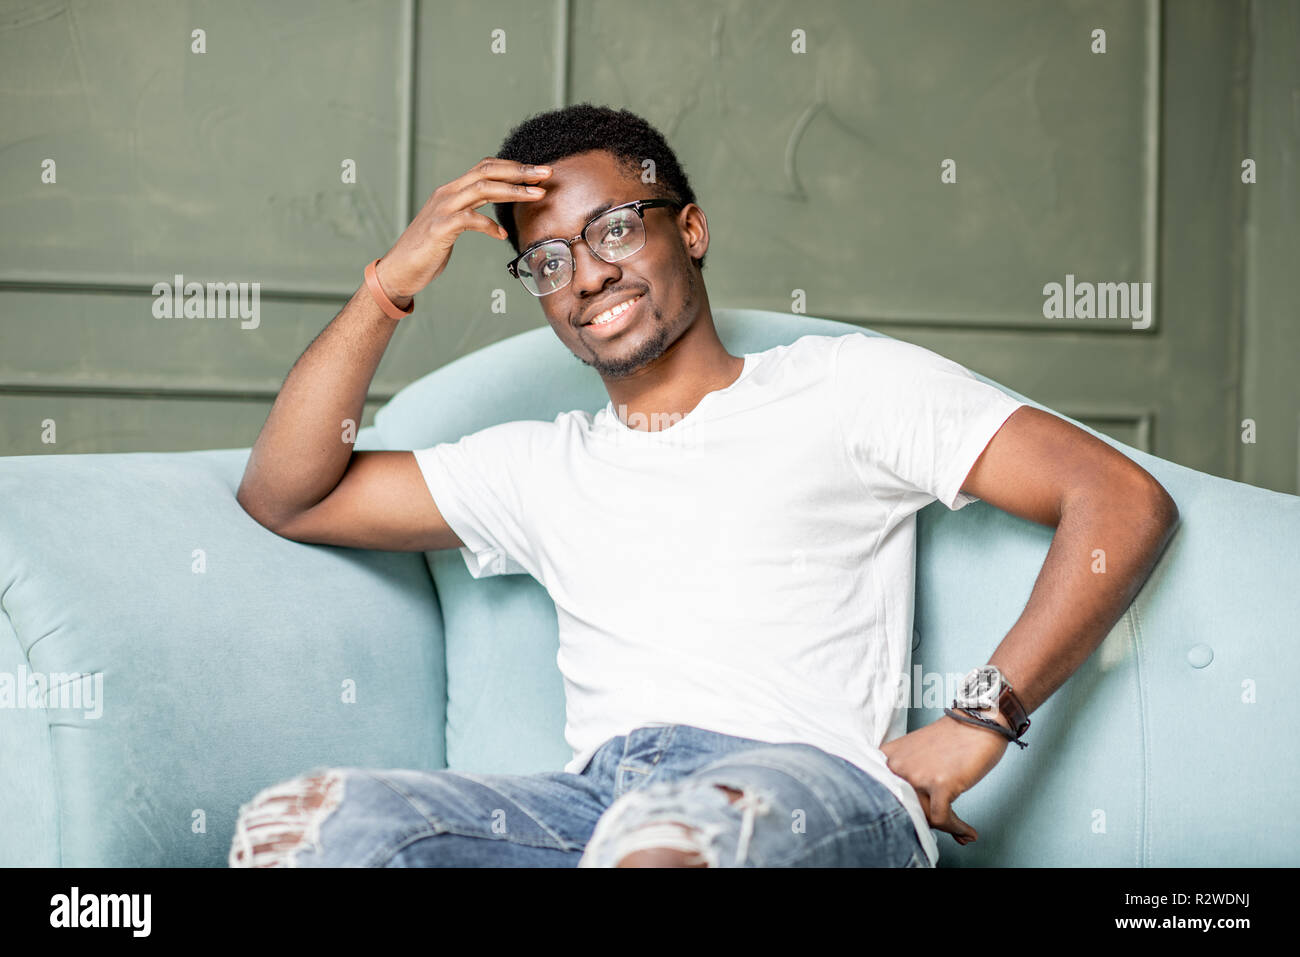 Portrait of a young afro ethnicity man sitting on the couch during the psychological session with psychologist in the office - Stock Image